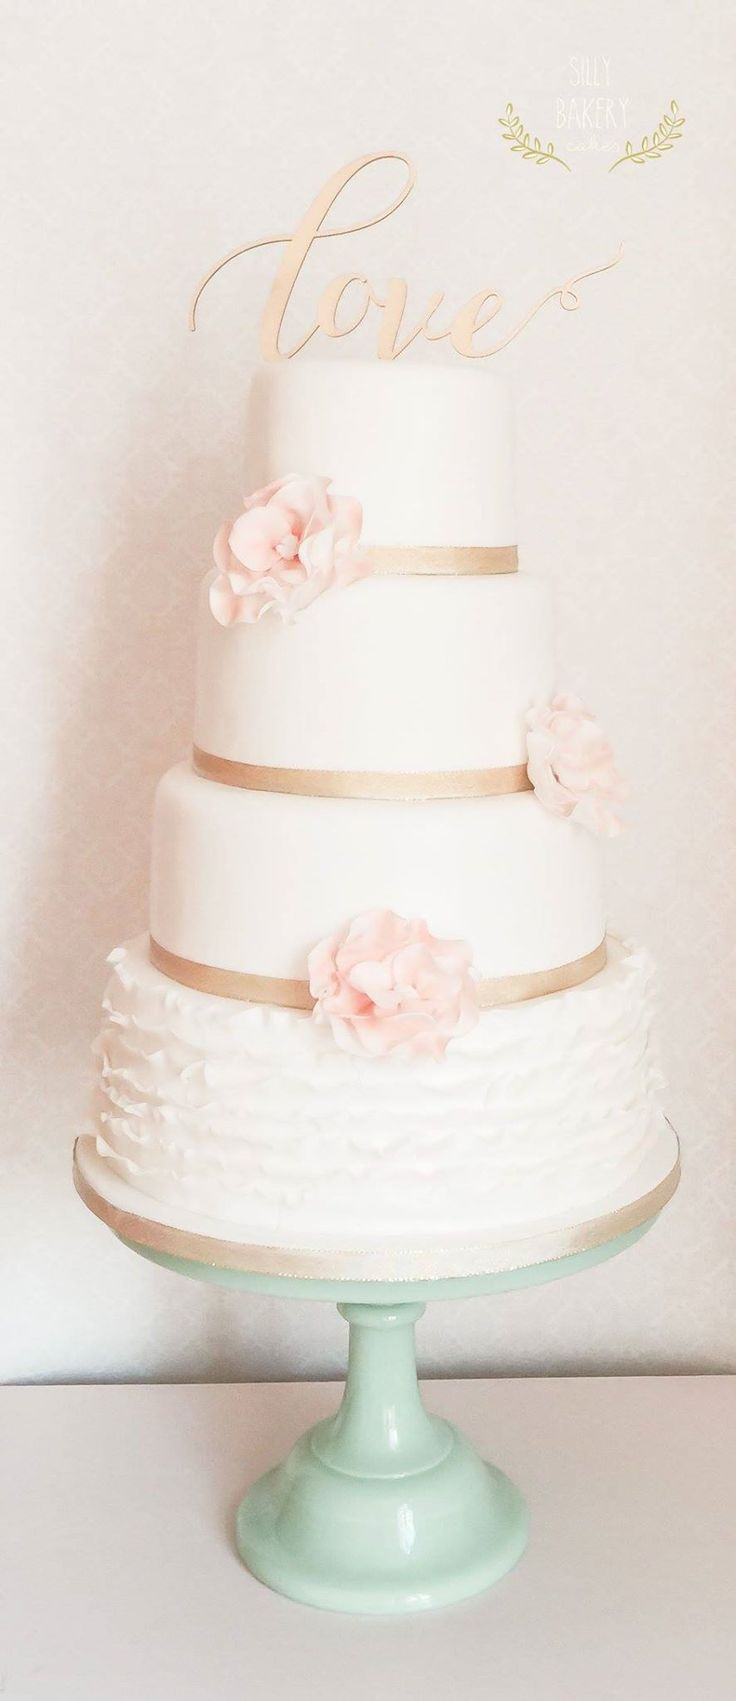 wedding-cakes-24-07142015-km